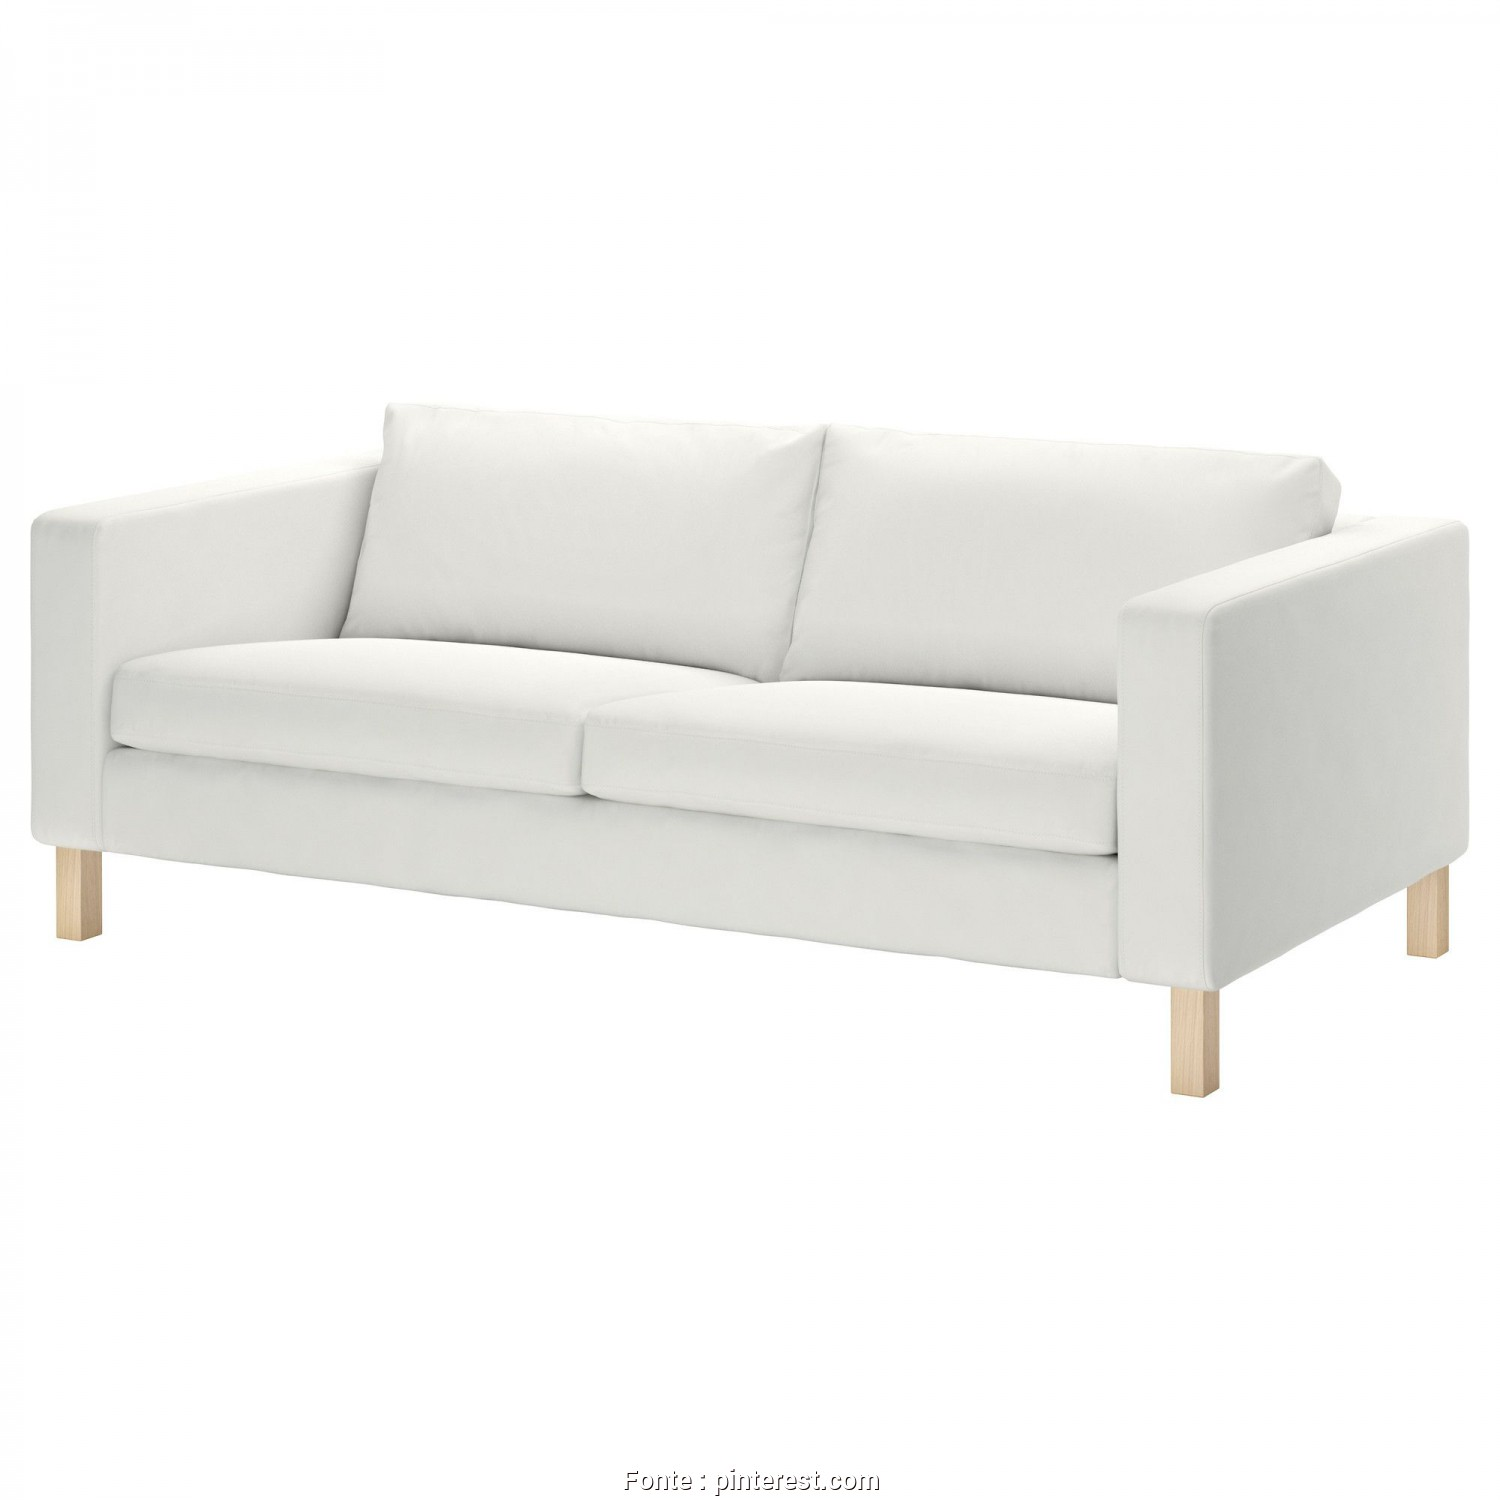 Ikea Klippan Bank Leer, Casuale IKEA: KARLSTAD Sofa, Blekinge White, $399, This Would Work, Our Living Room. I Would Want To, The Cover (Red, Aqua Or Royal Blue) & Possibly